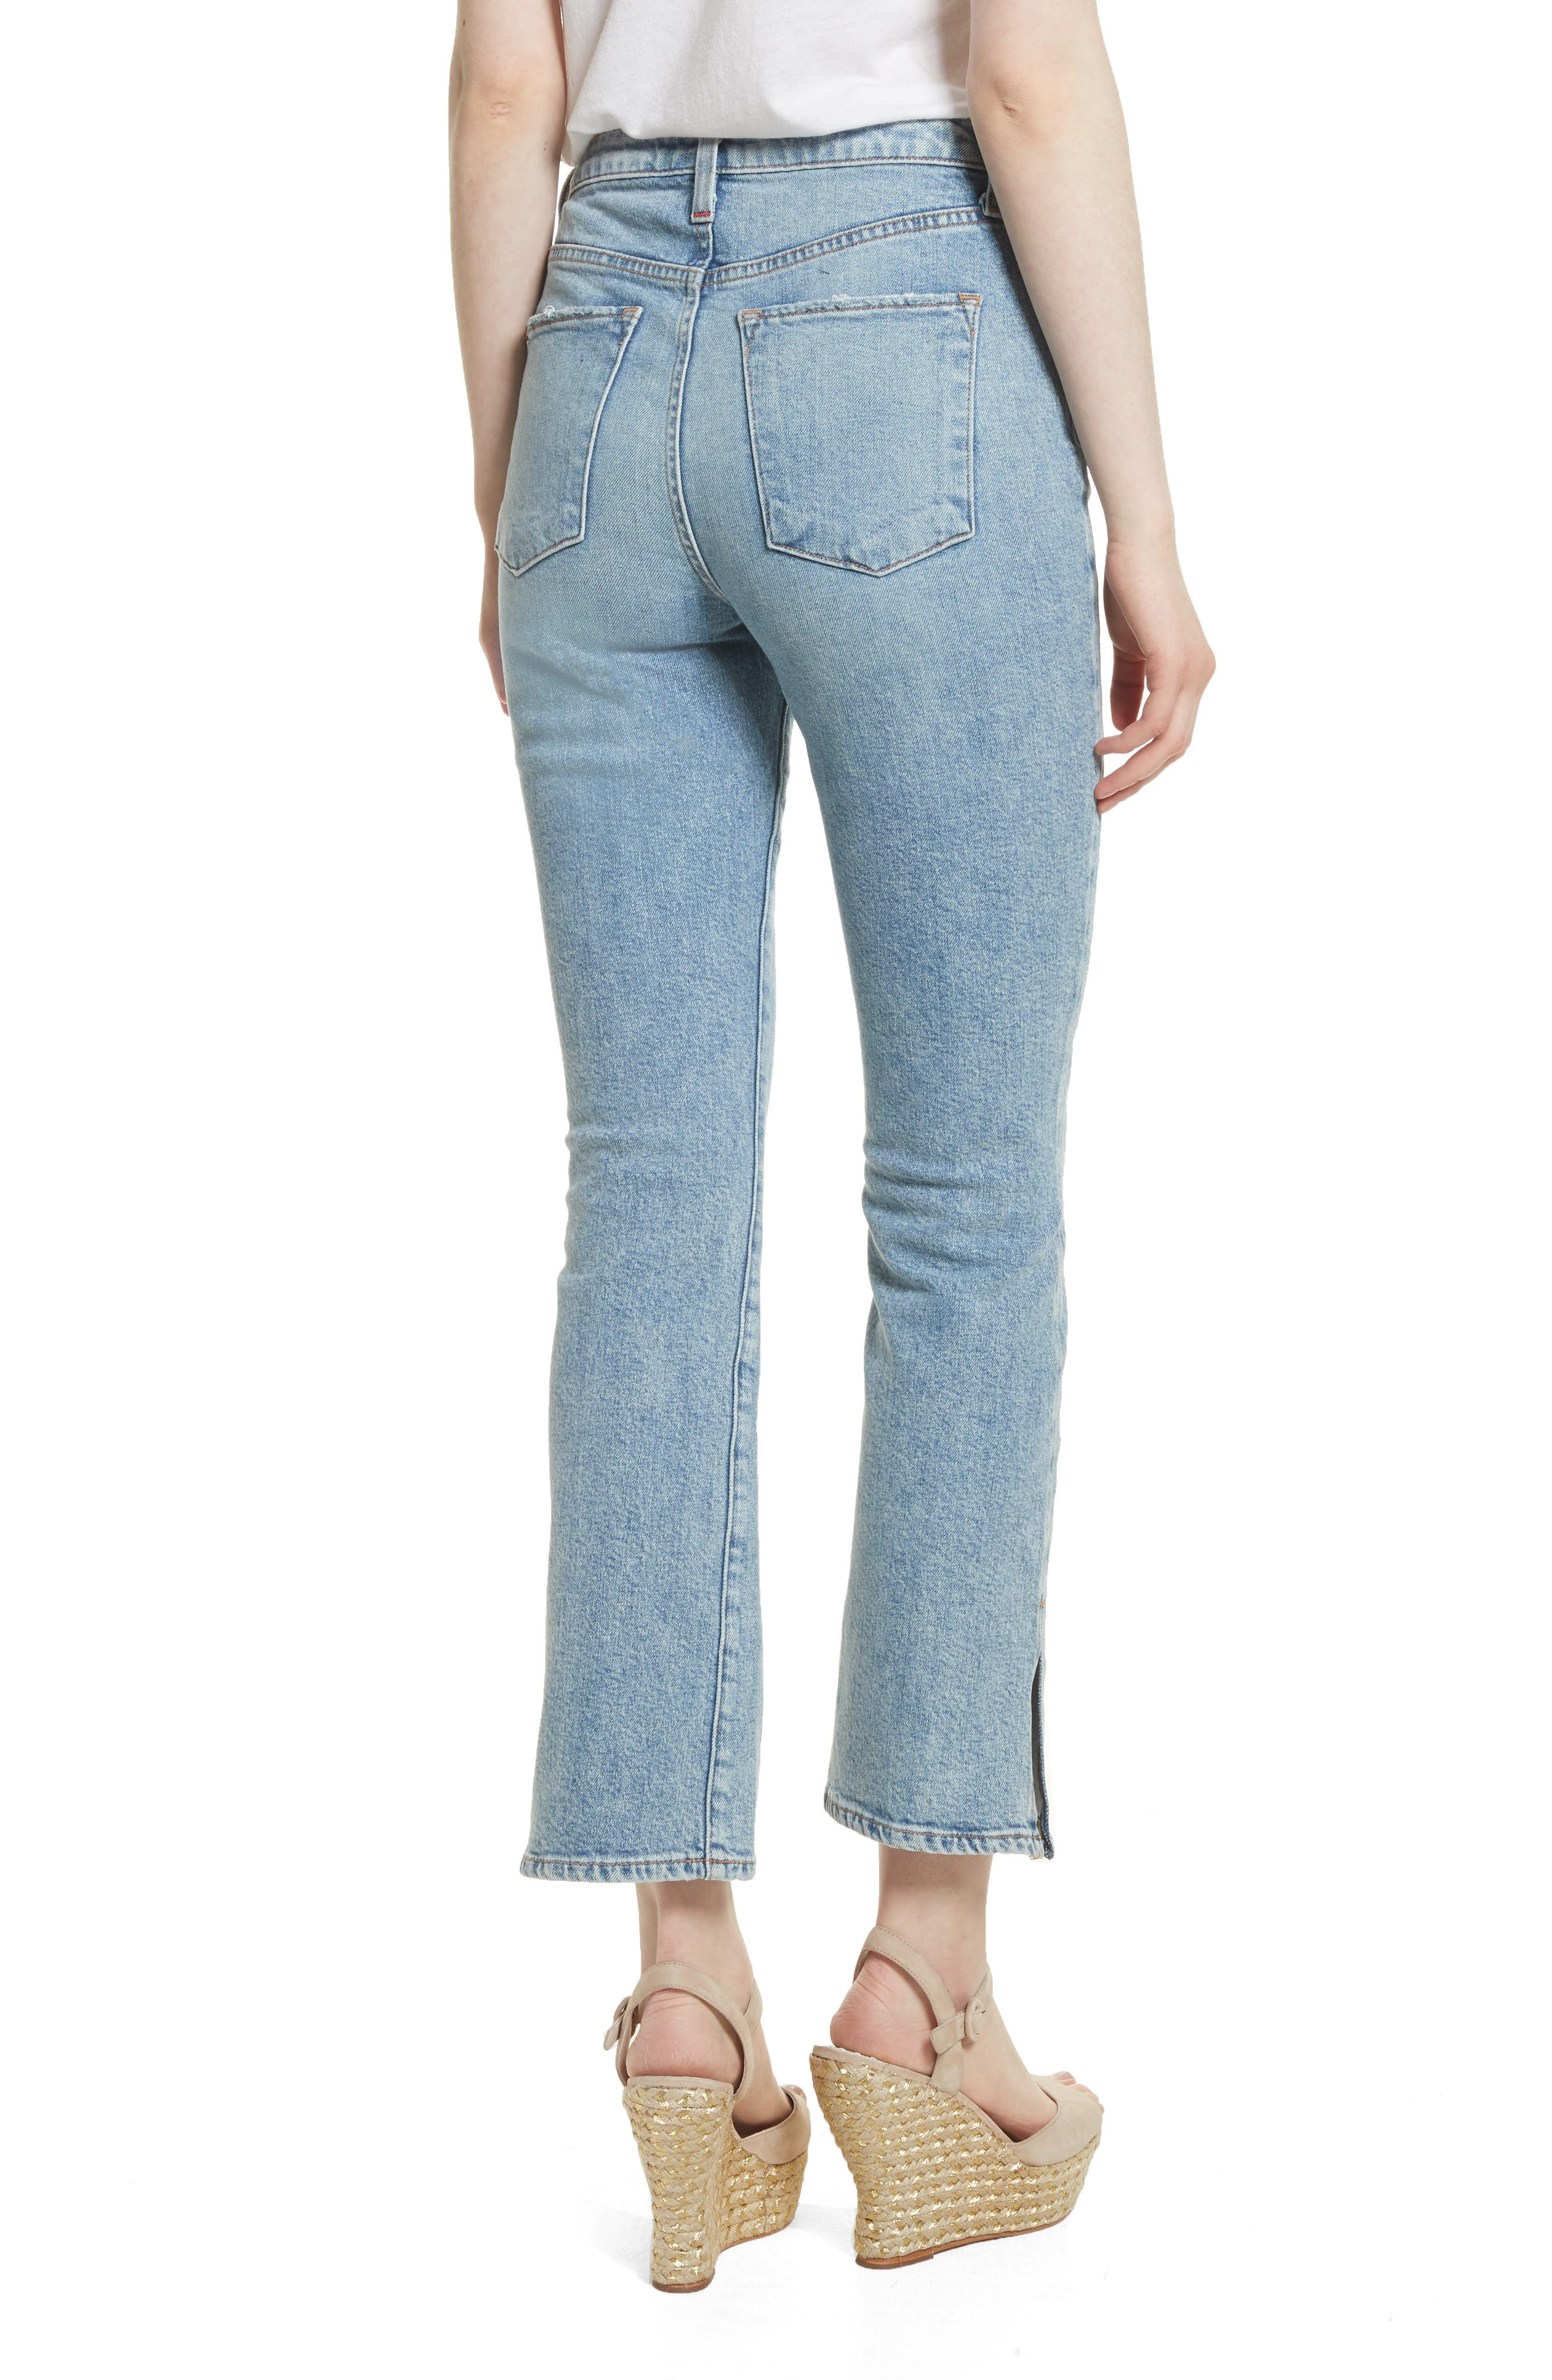 AO.LA Fabulous High Waist Baby Bootcut Jeans,                             Alternate thumbnail 2, color,                             479